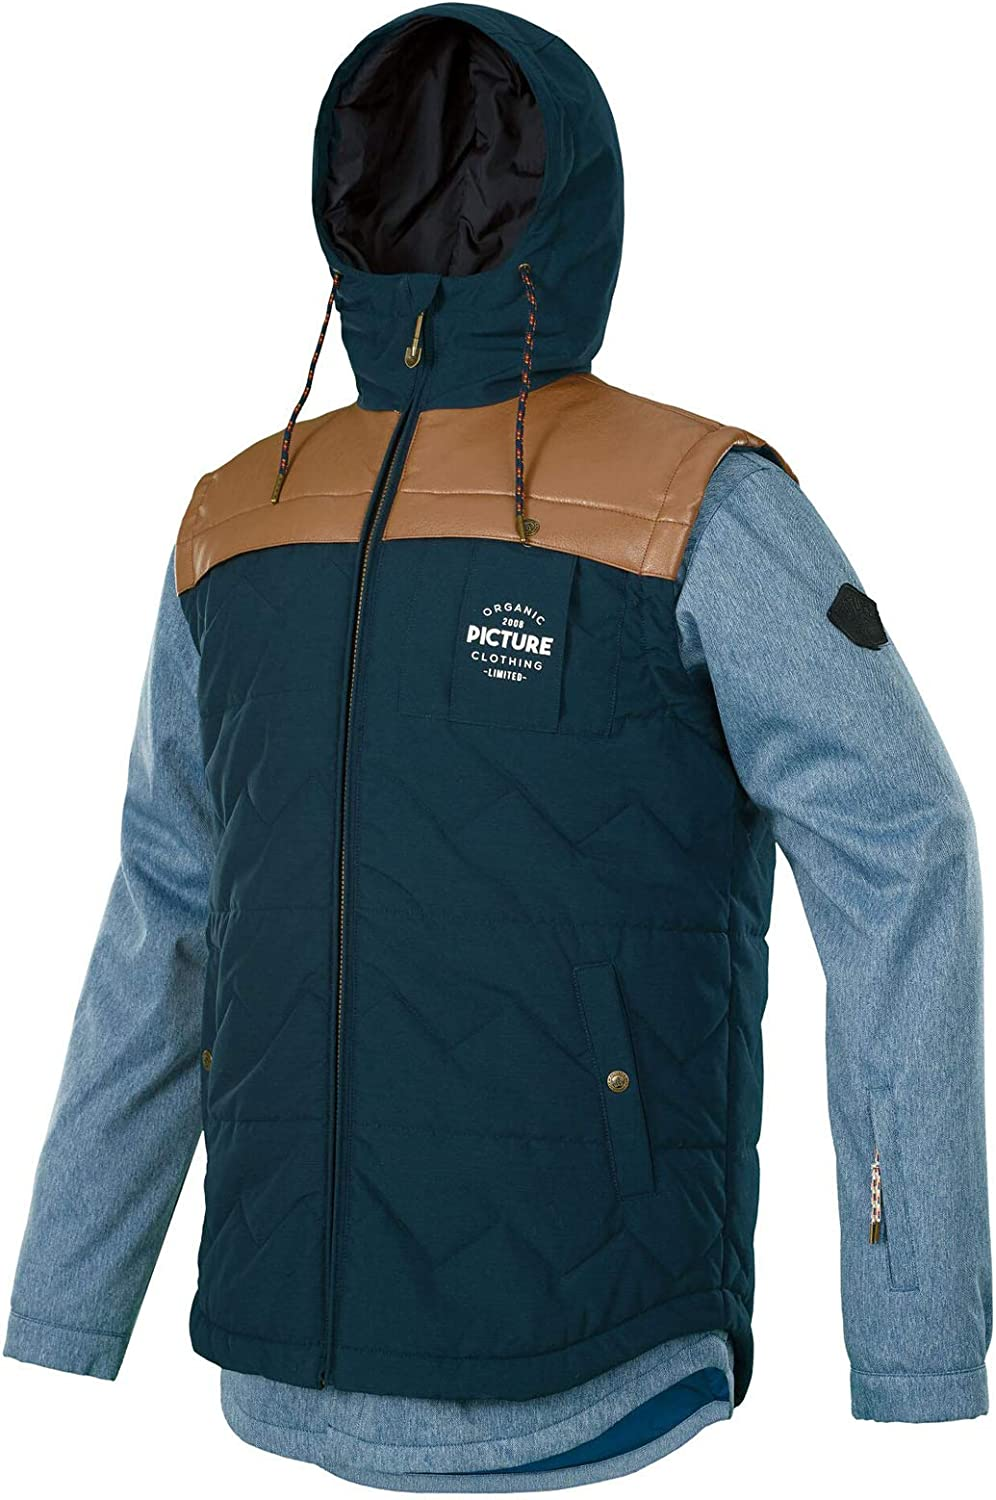 Picture Men's Crispin Ridingo Snowboard Jacket with Chest Pocket 2019 in DenimS